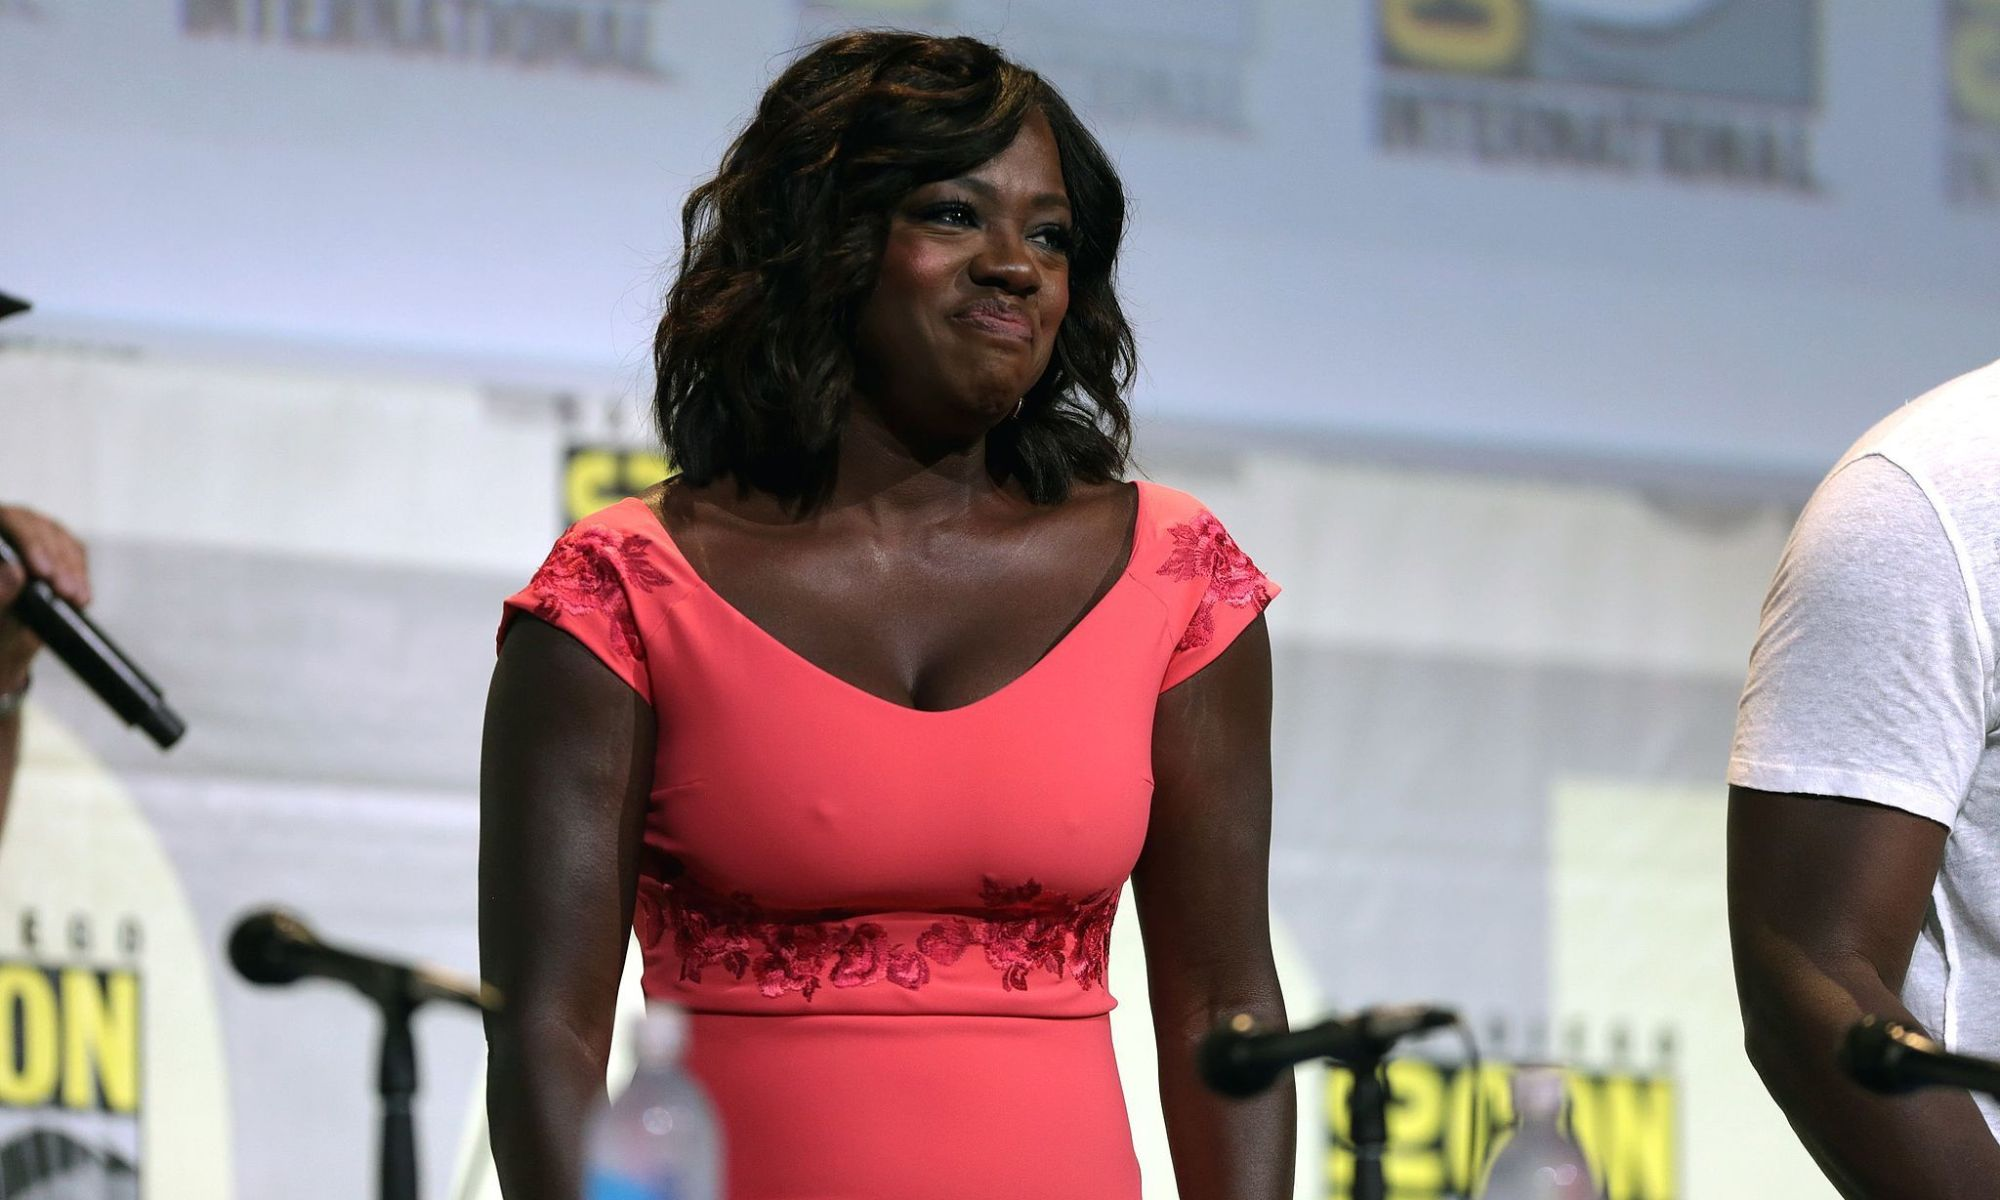 Viola Davis at the 2016 San Diego Comic-Con